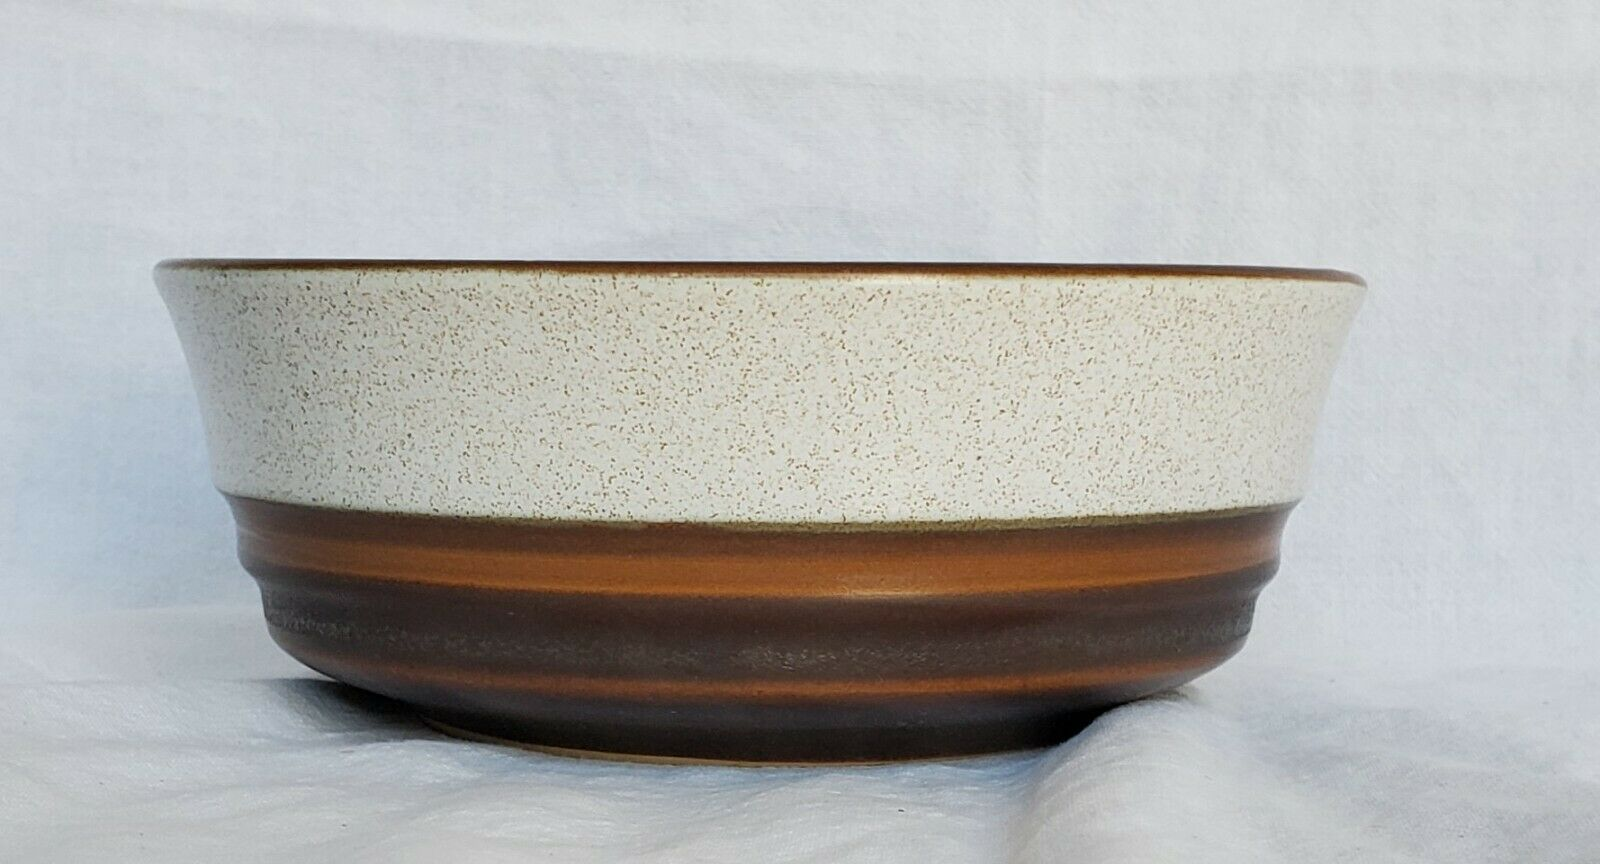 Denby POTTERS WHEEL RUST 5 7/8 Cereal Bowl Stoneware Earthenware - $15.00